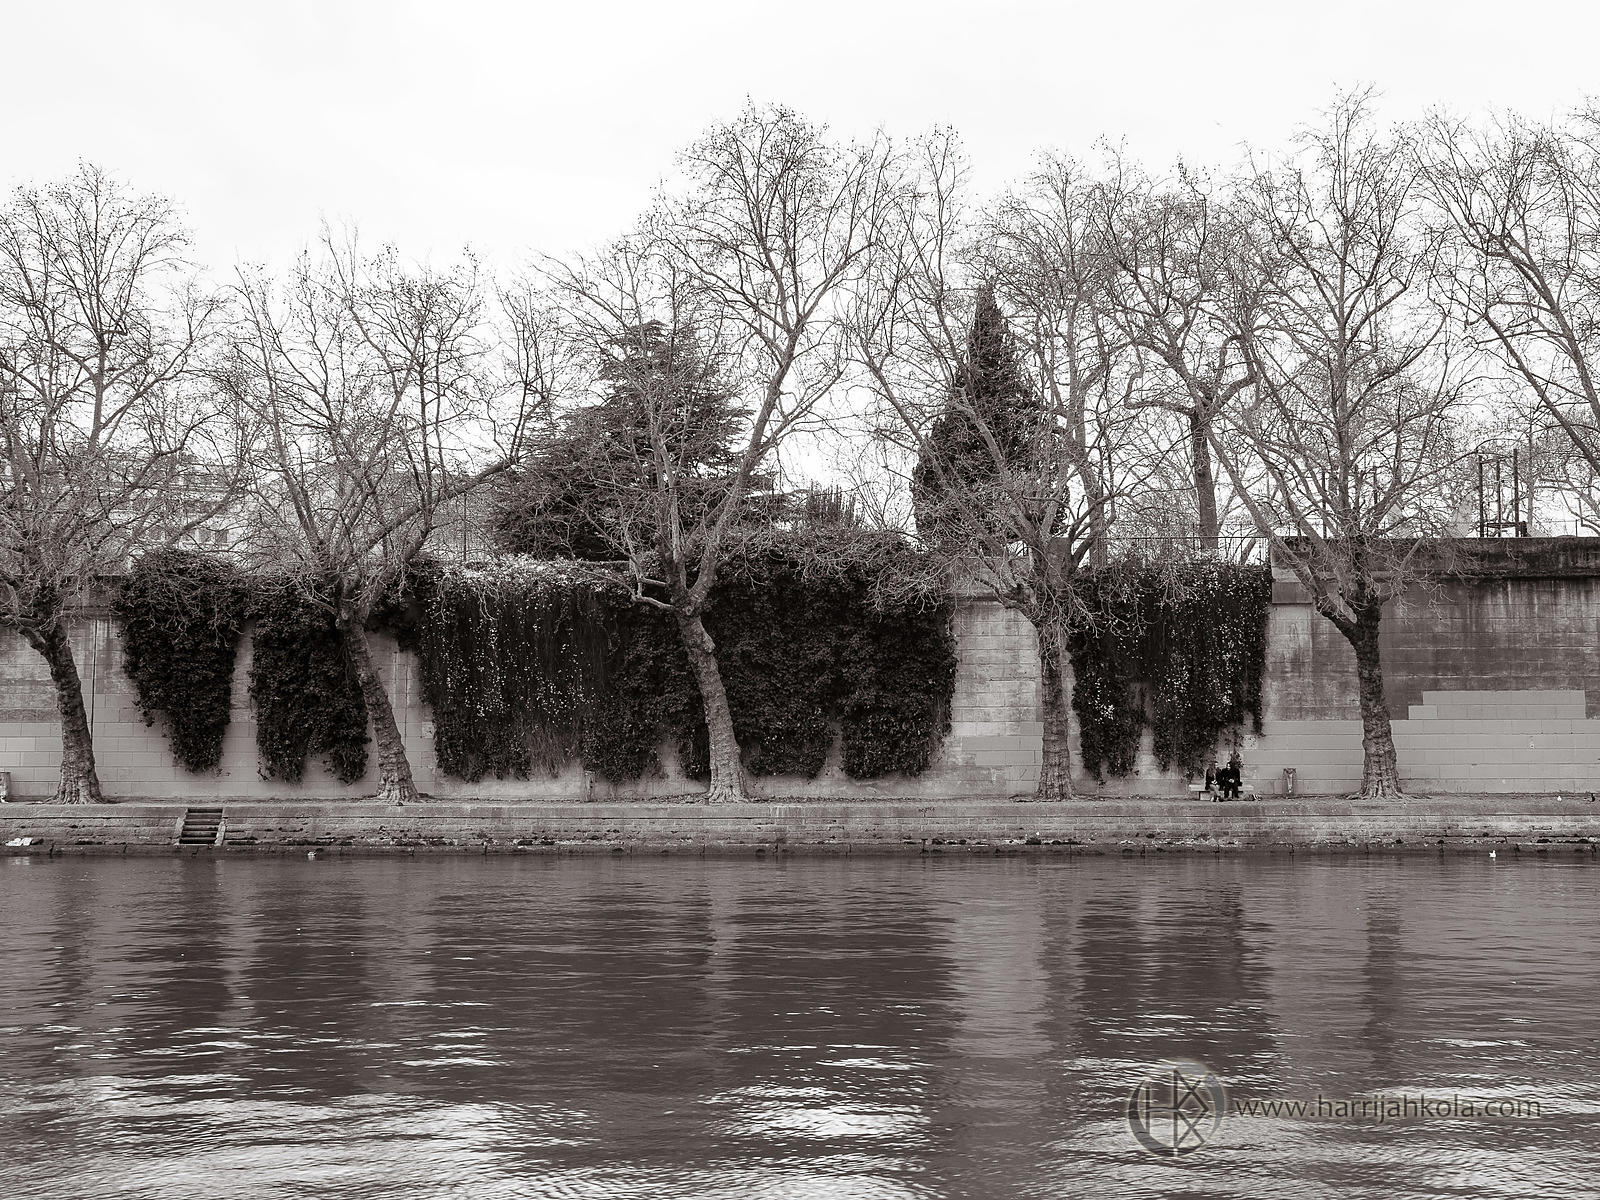 France - Paris (Seine - Break)